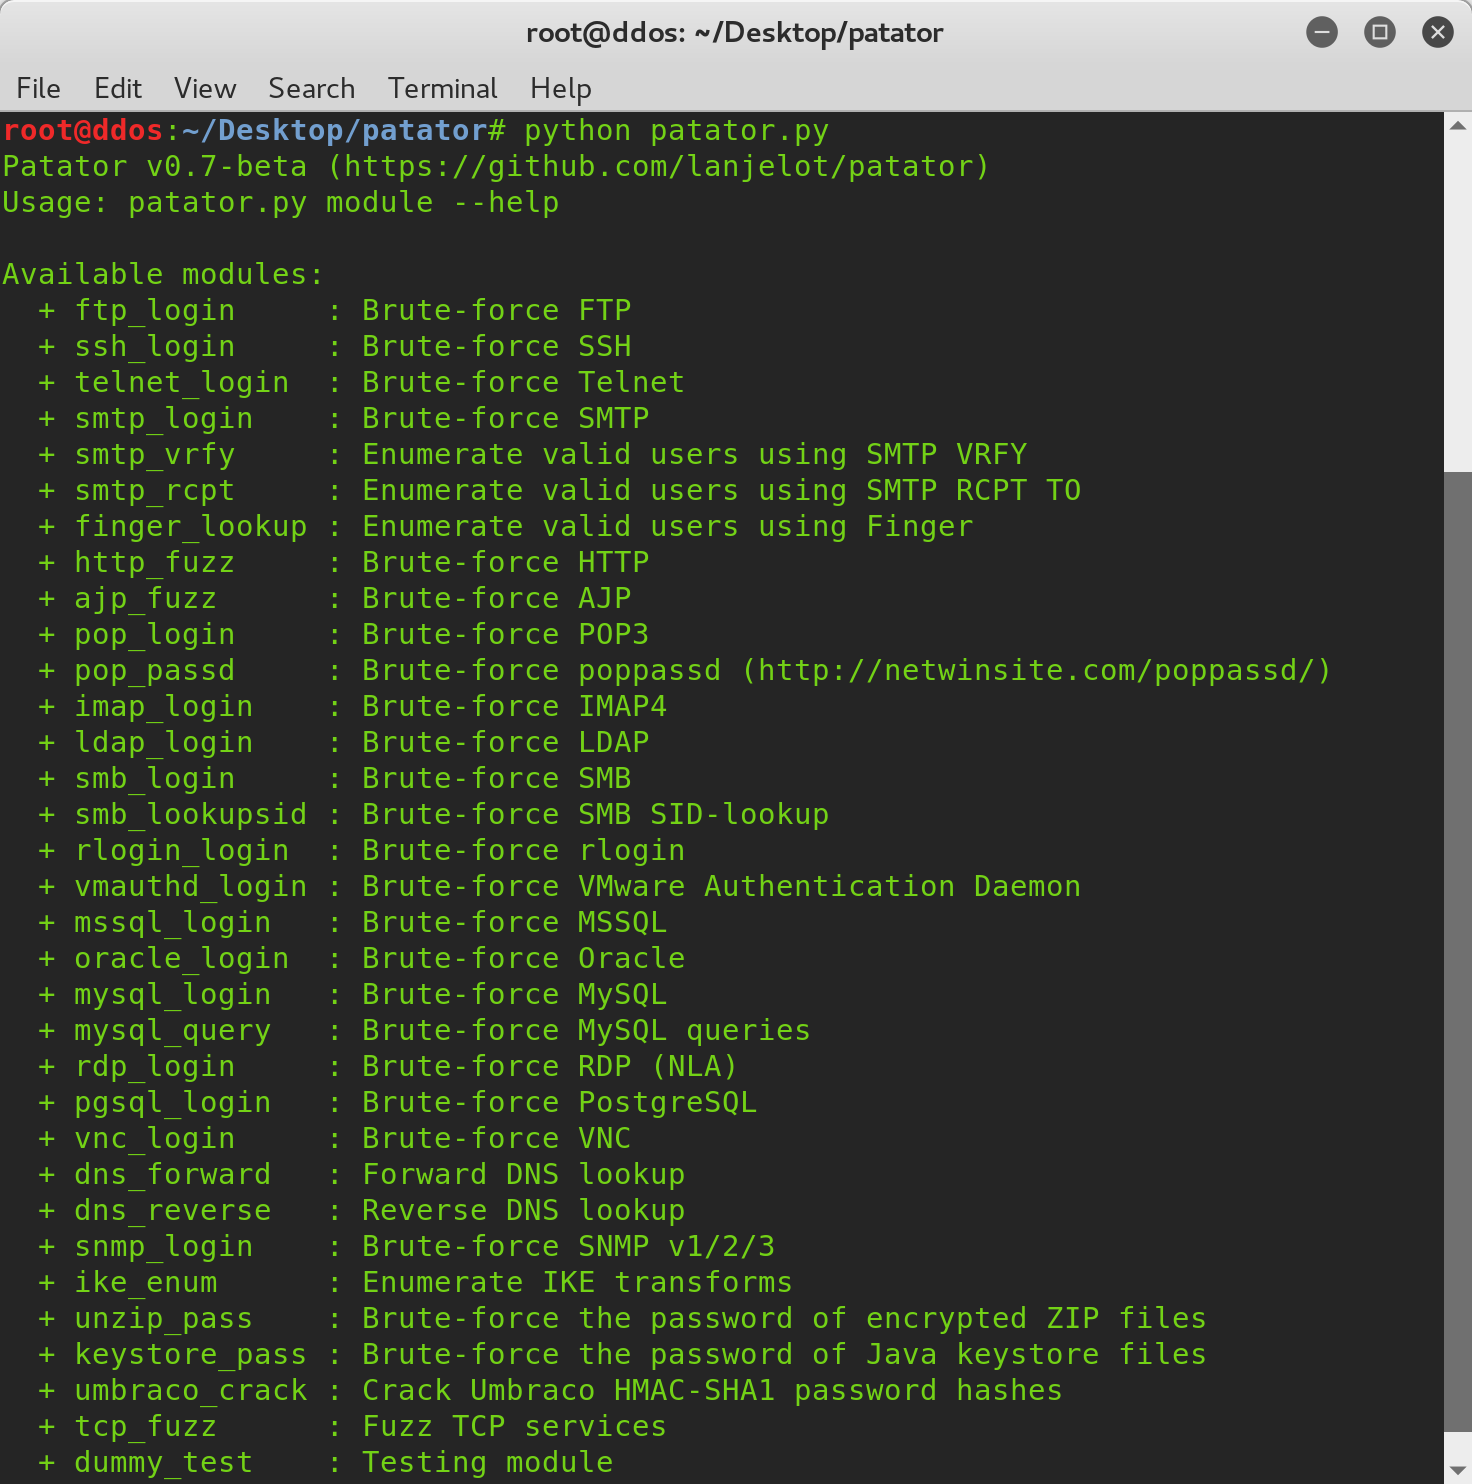 Brute force attacks with Patator